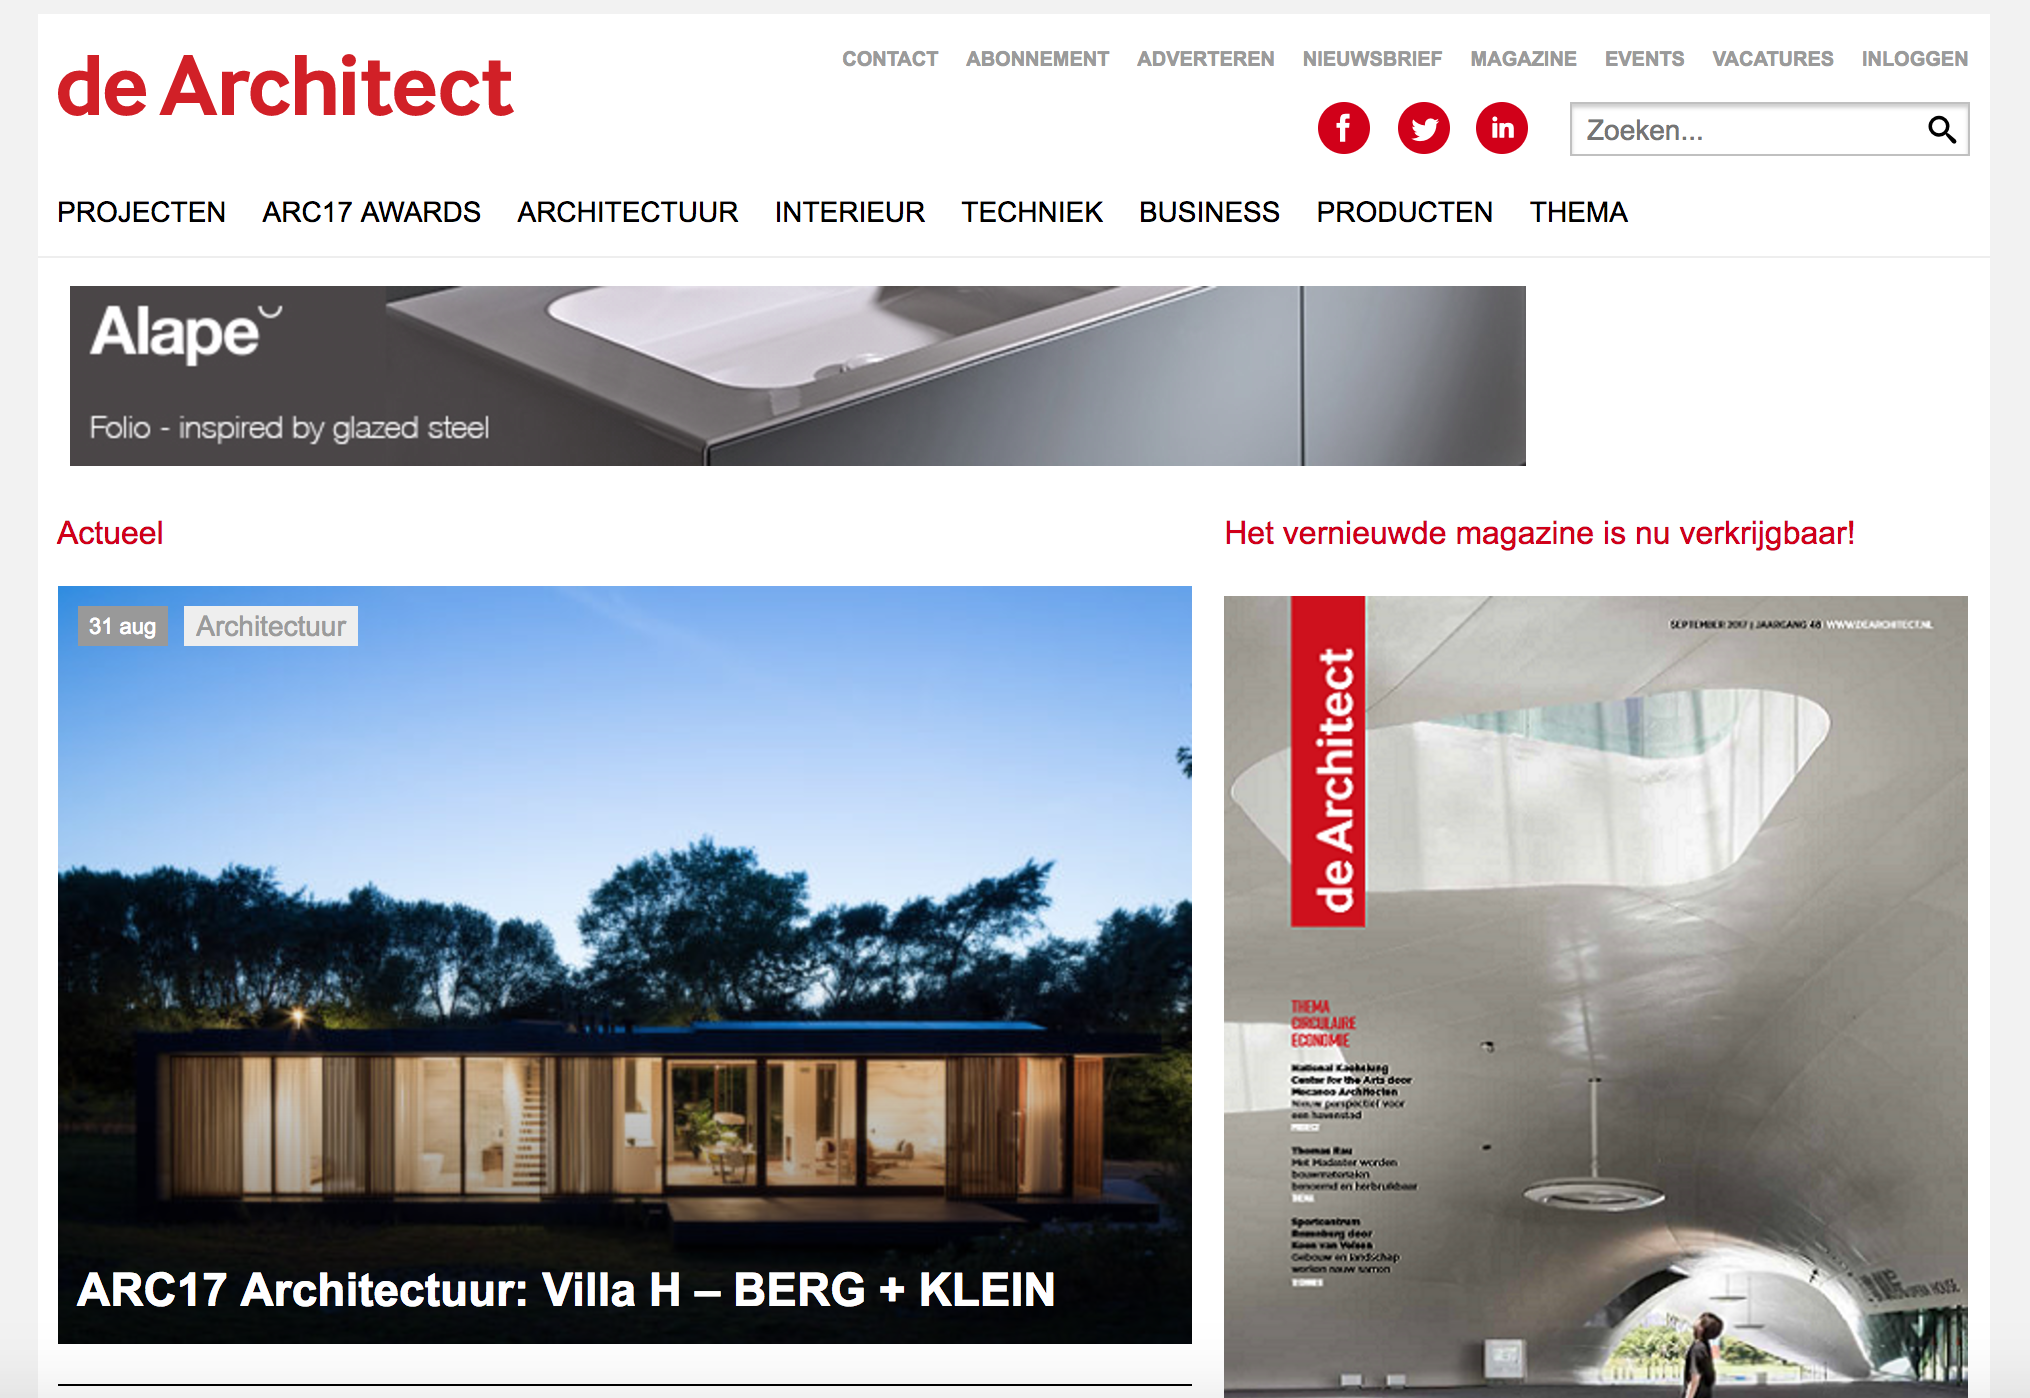 Villa H featured on 'de Architect'